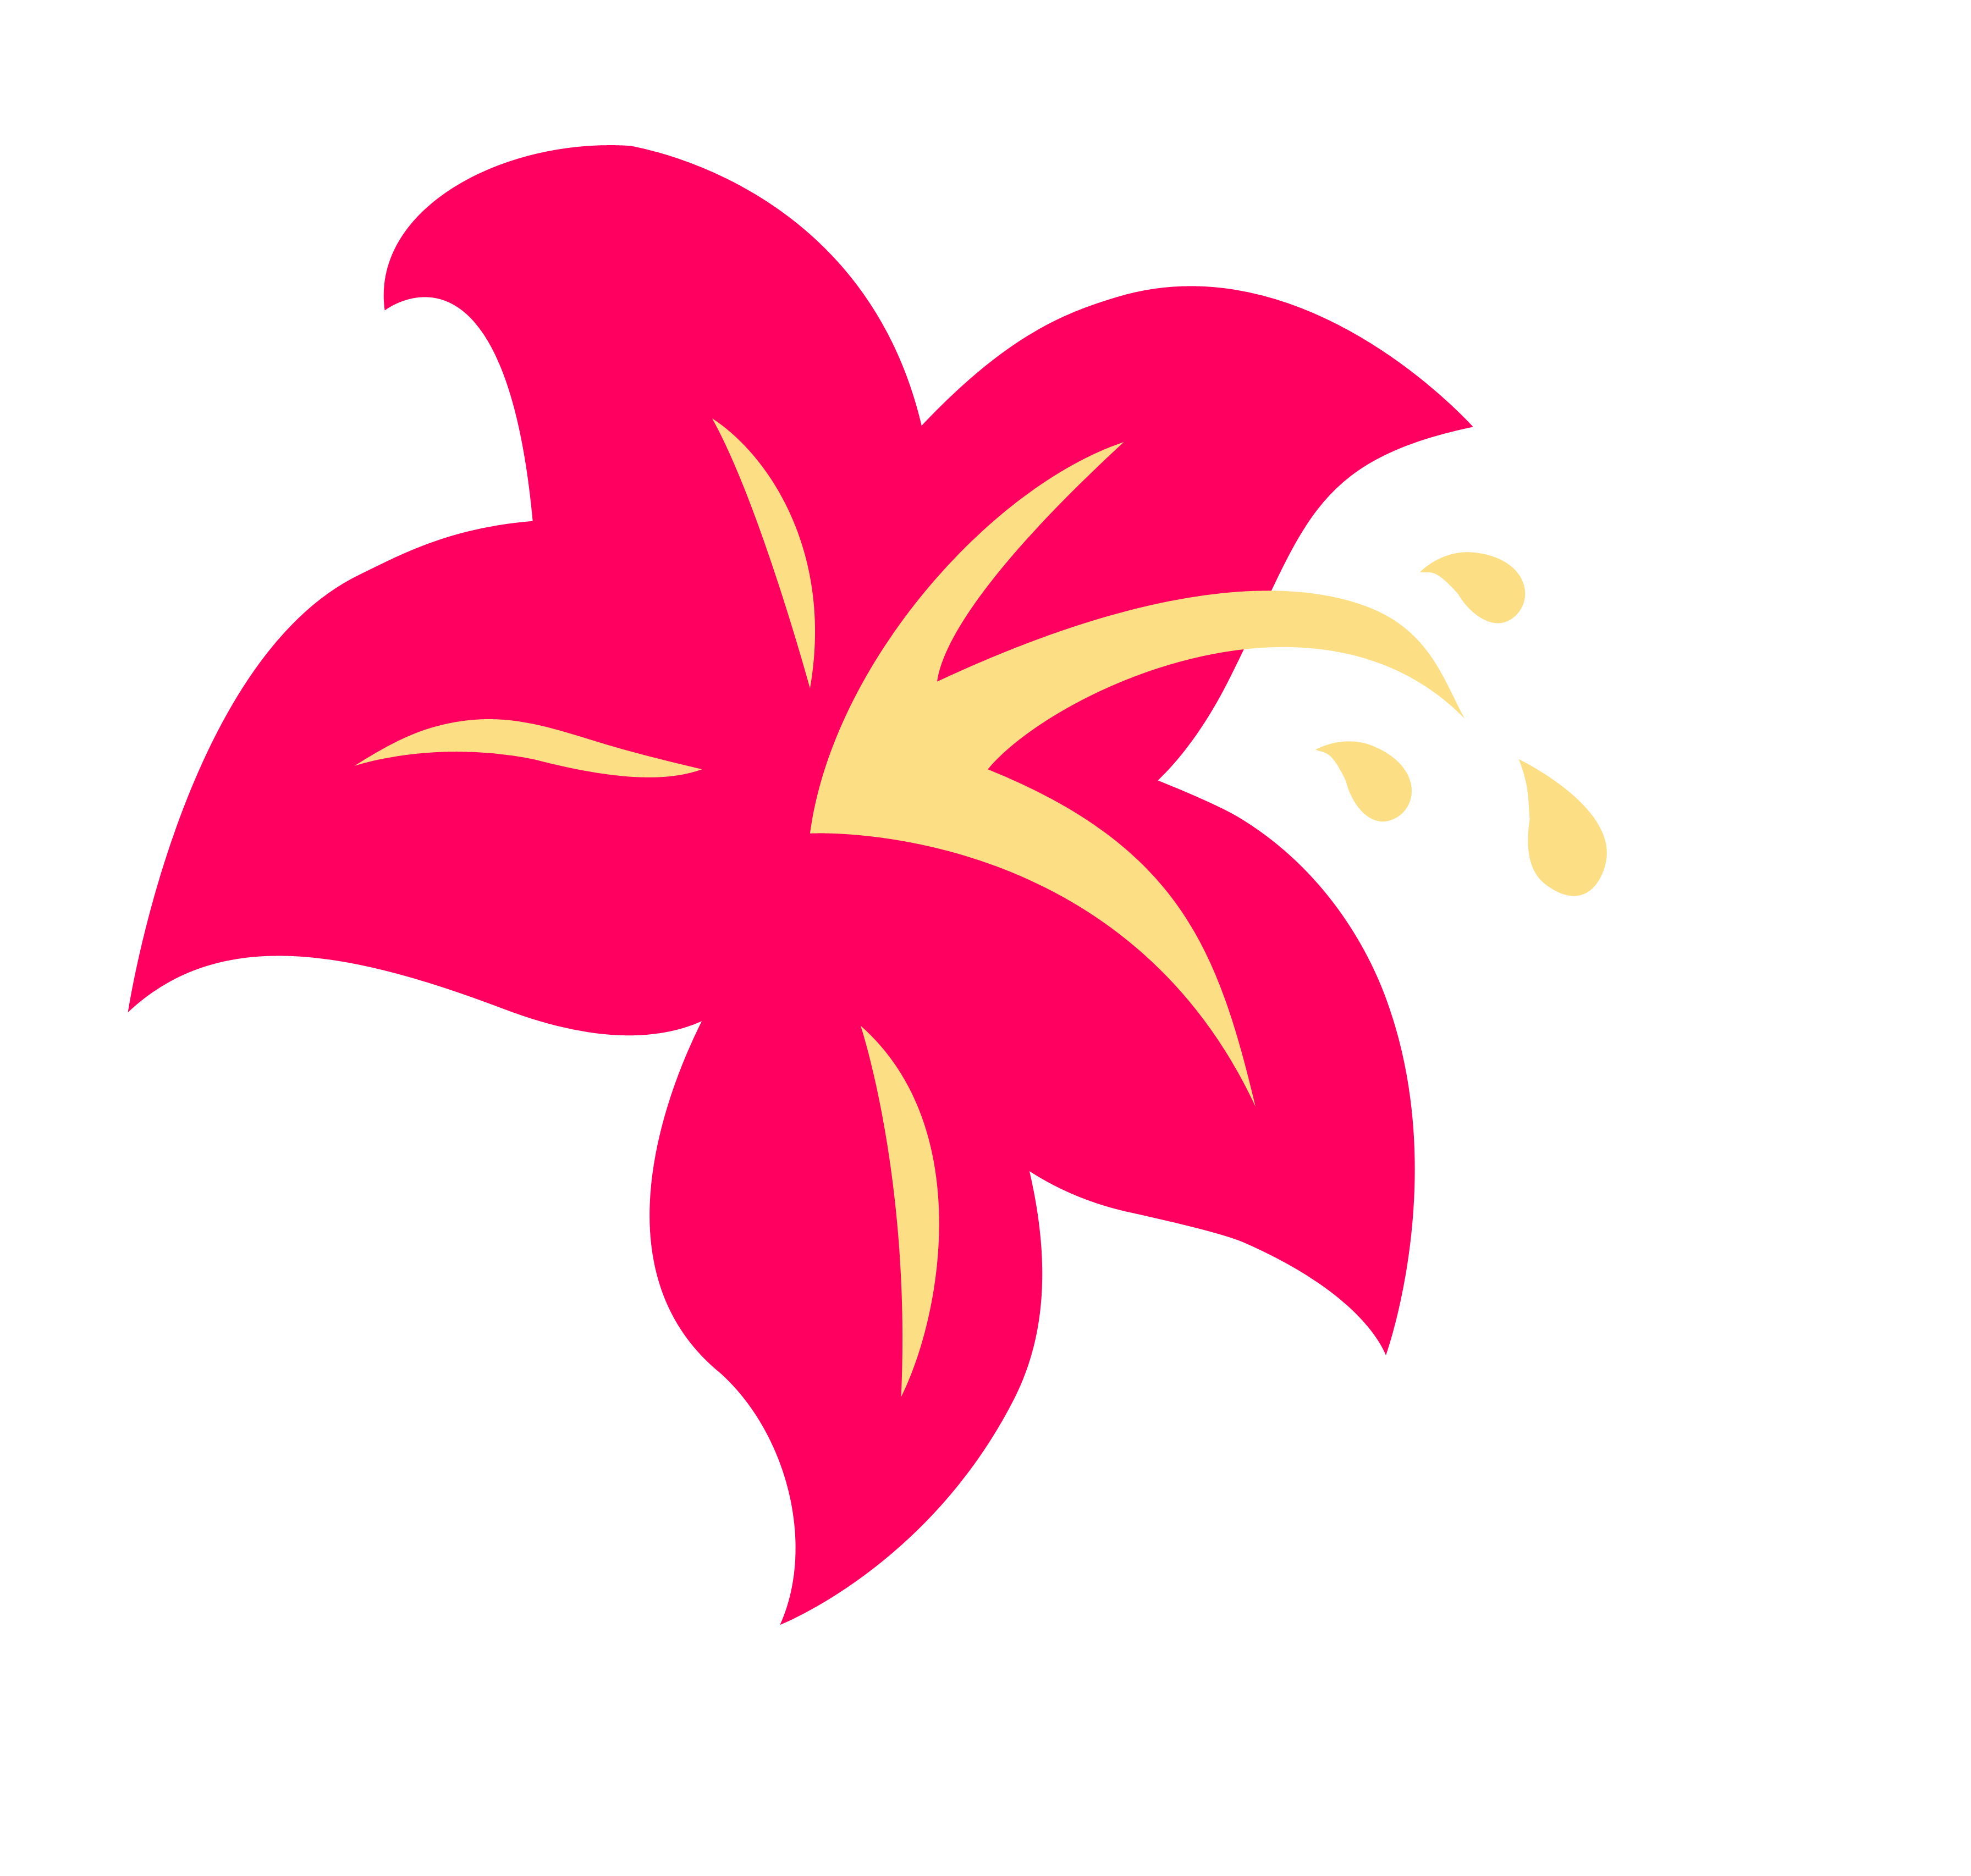 Lily svg #10, Download drawings